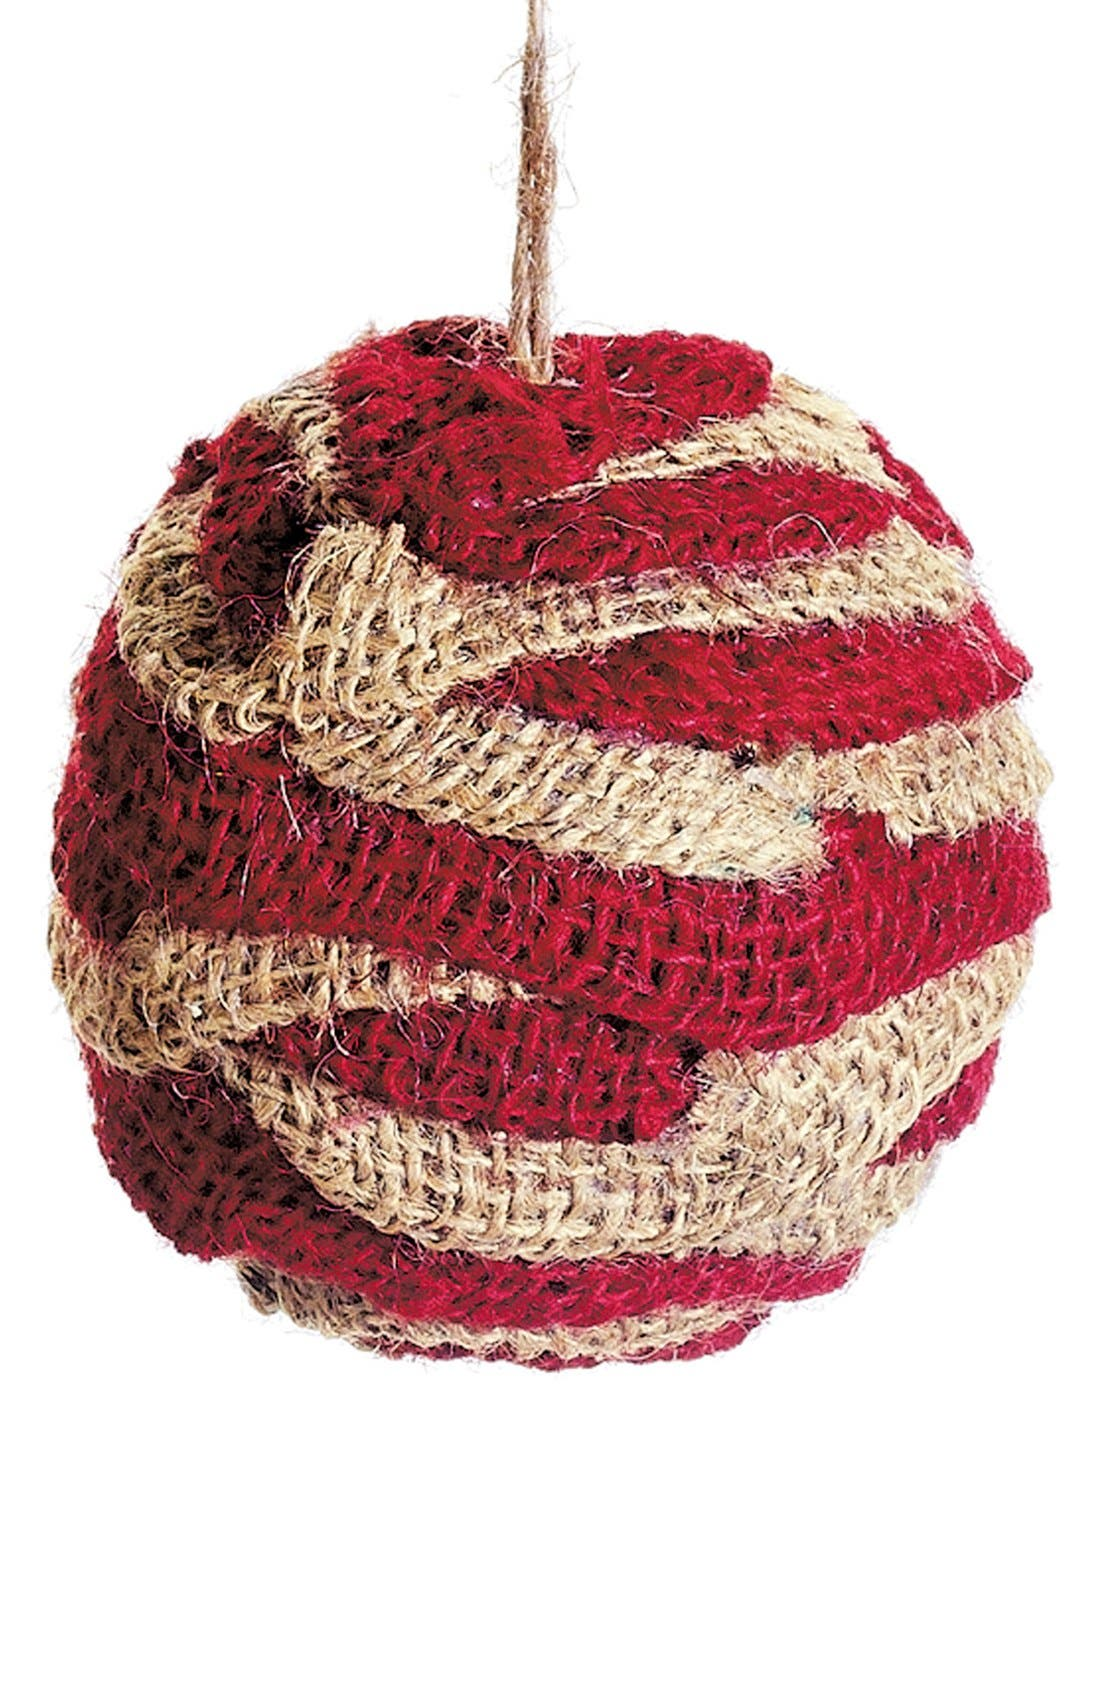 Alternate Image 1 Selected - ALLSTATE Burlap Ball Ornament, Small